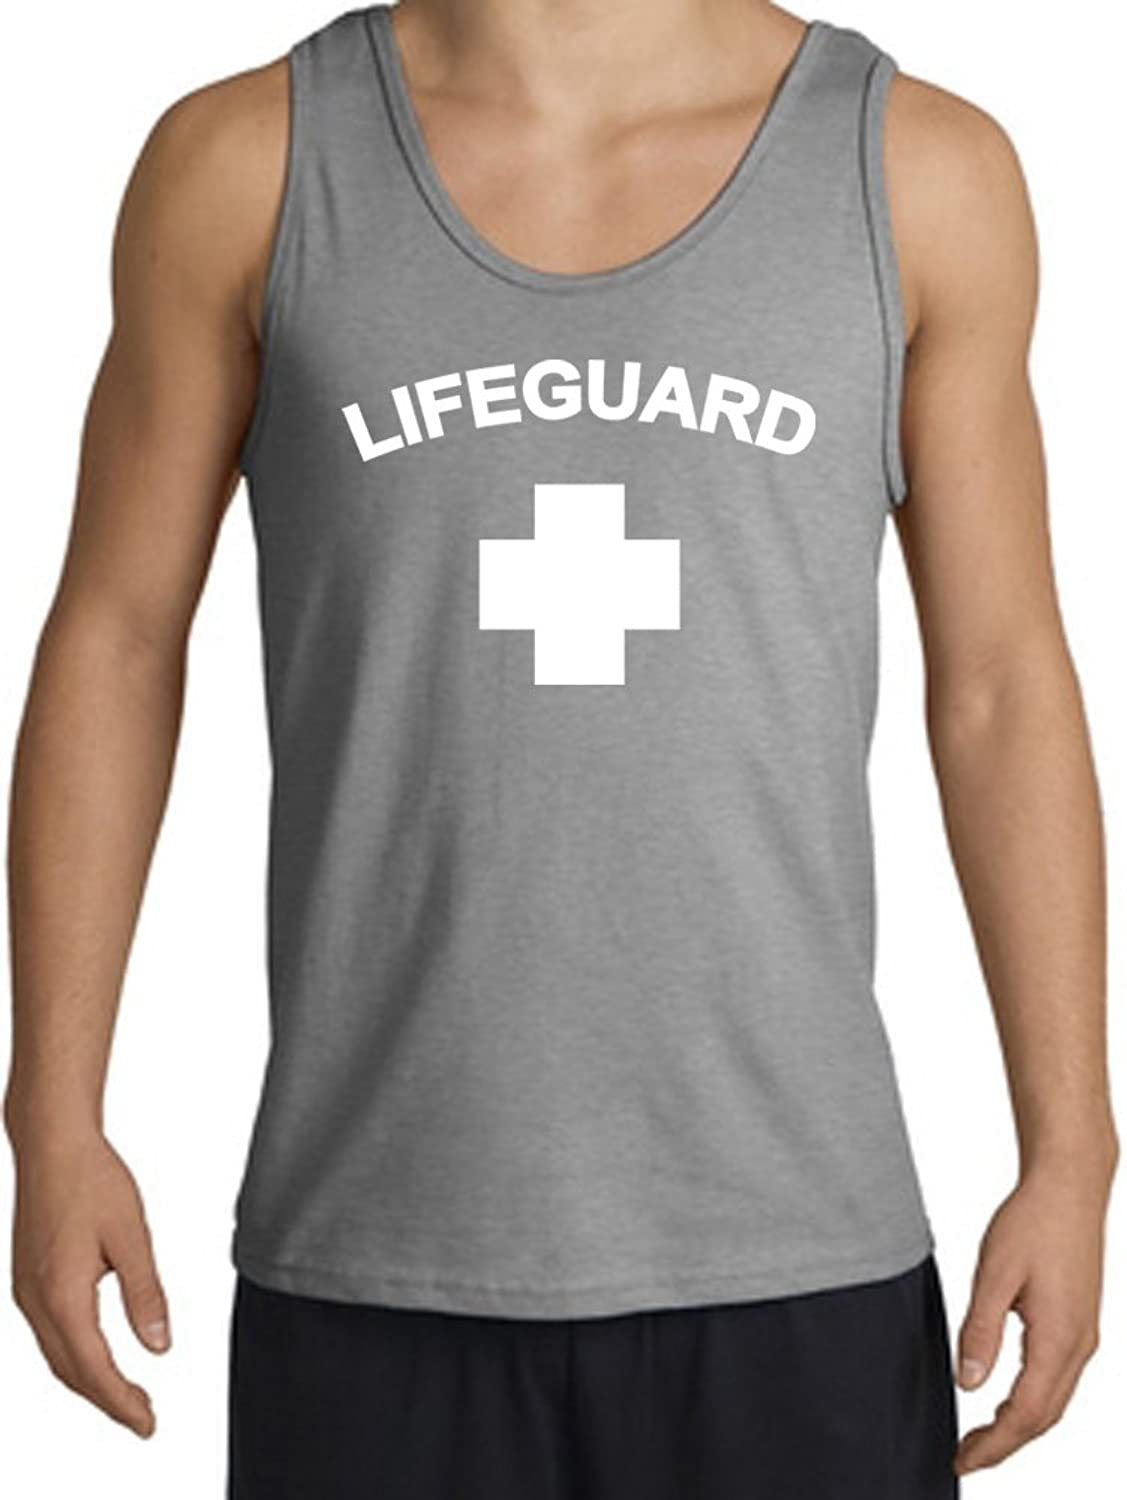 Lifeguard Tank   Adult Sleeveless Shirt Tanktop   Sports Grey by A&E Designs